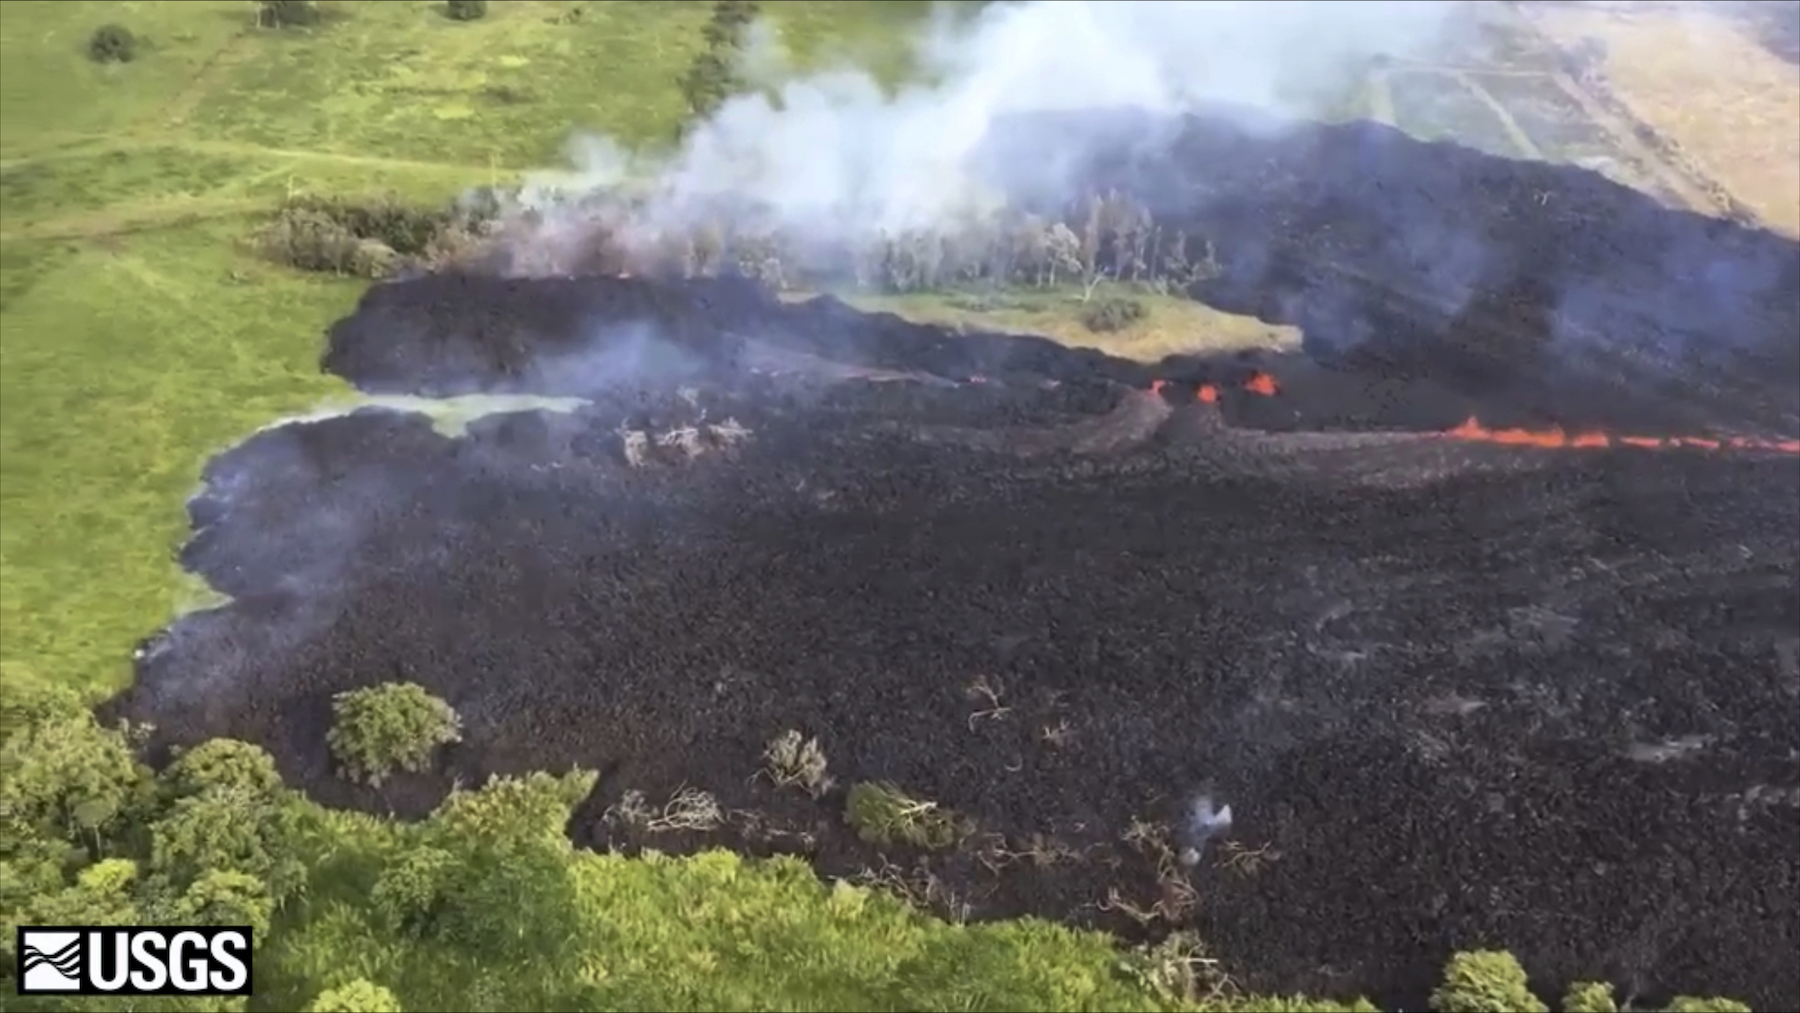 "<div class=""meta image-caption""><div class=""origin-logo origin-image ap""><span>AP</span></div><span class=""caption-text"">In this May 13, 2018 frame from video released by the U.S. Geological Survey, gases rise from a fissure near Pahoa, Hawaii. (U.S. Geological Survey via AP)</span></div>"